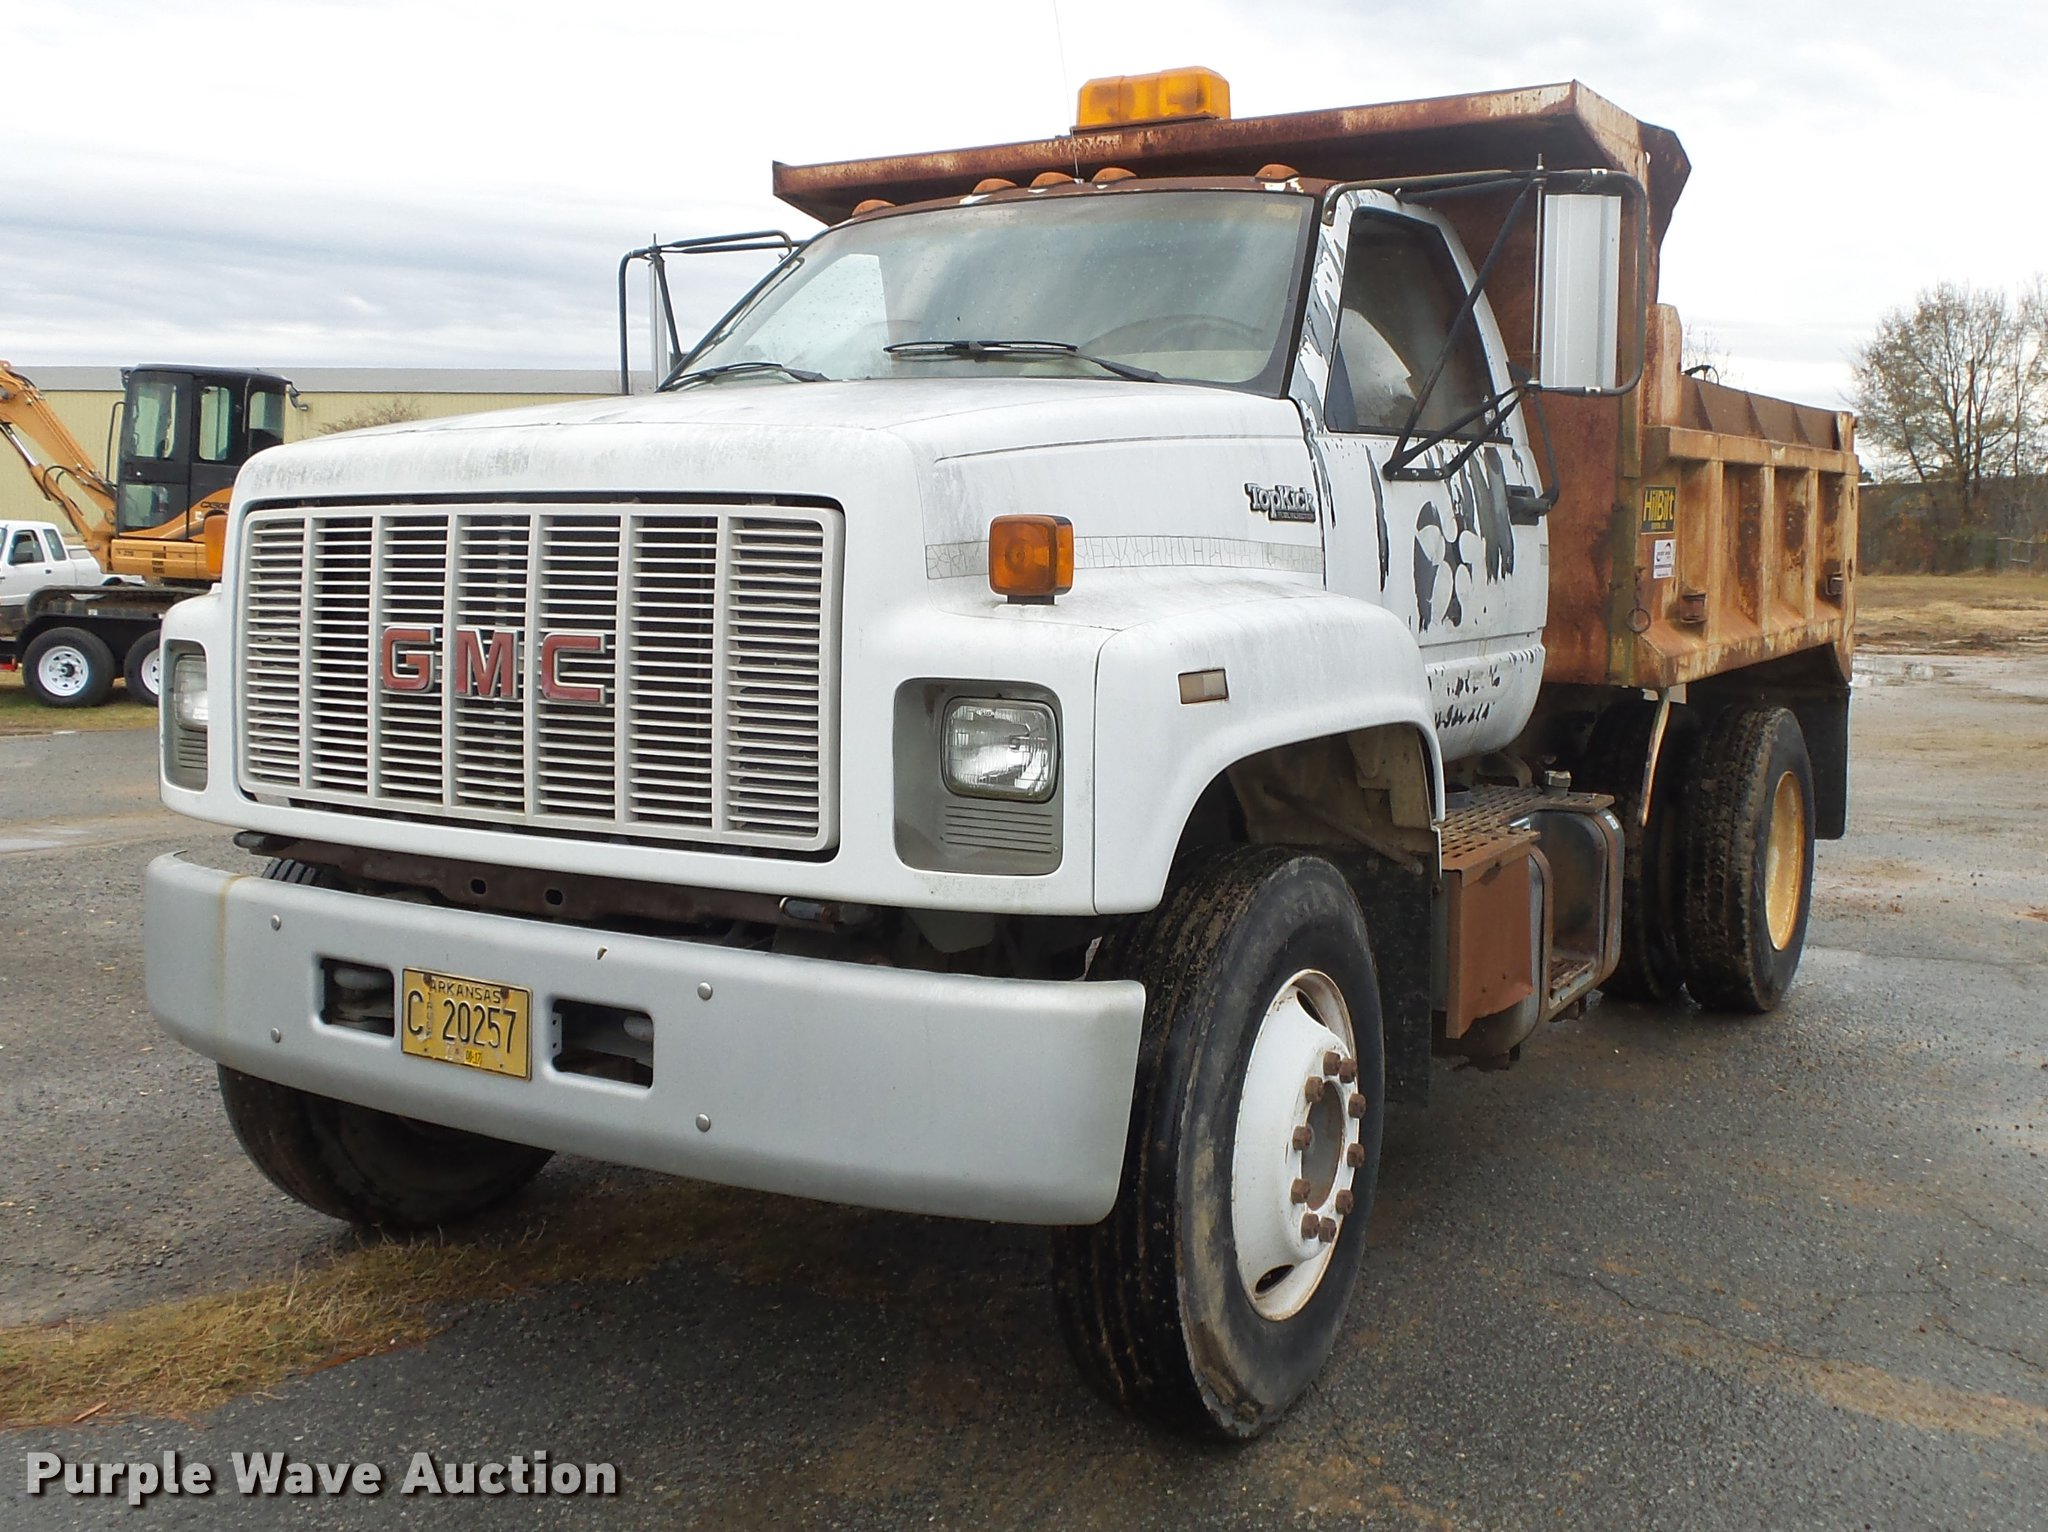 trucks pa sale for used mk rock vehicles topkick glen buysellsearch cab in chassis ml gmc on